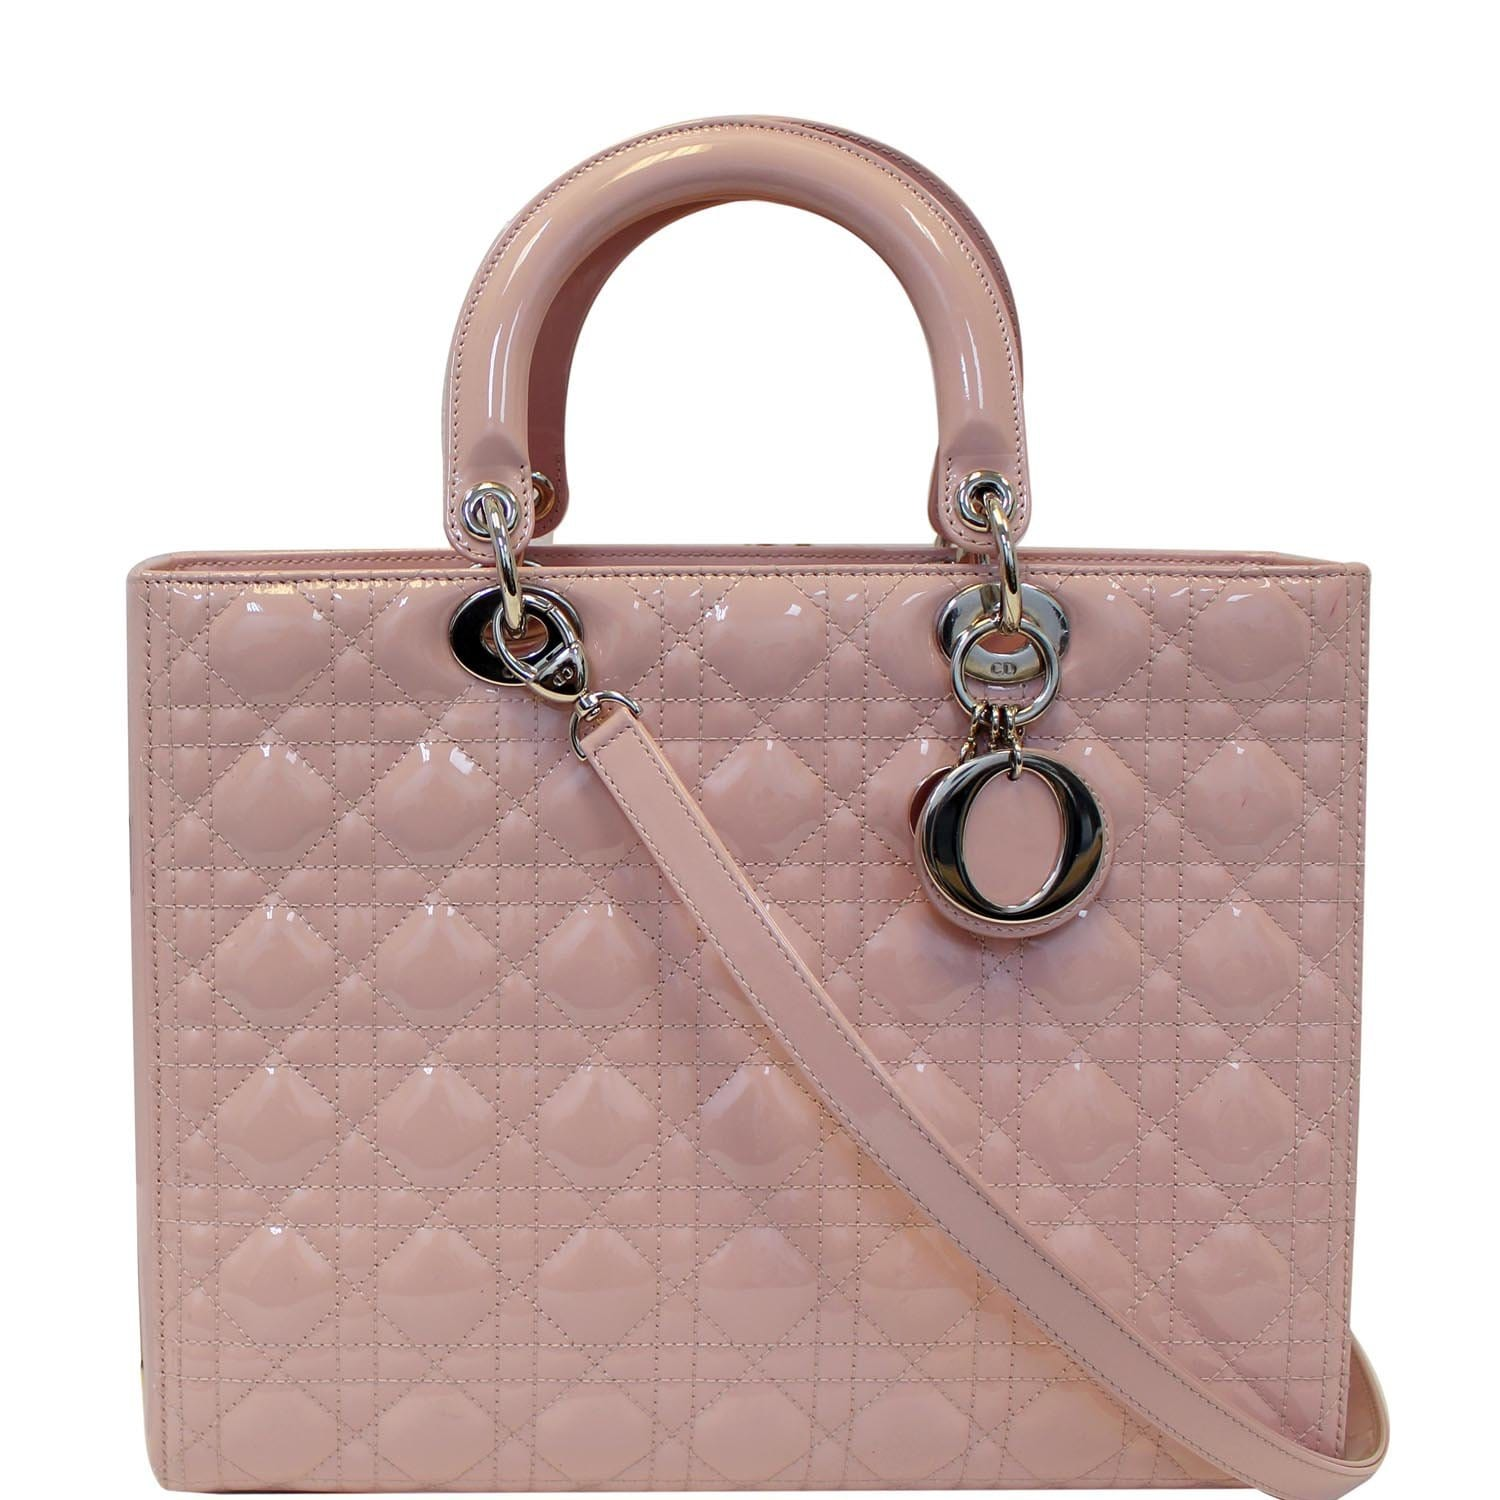 80ba962925 CHRISTIAN DIOR Quilted Patent Leather Lady Dior Large Shoulder Bag Pink